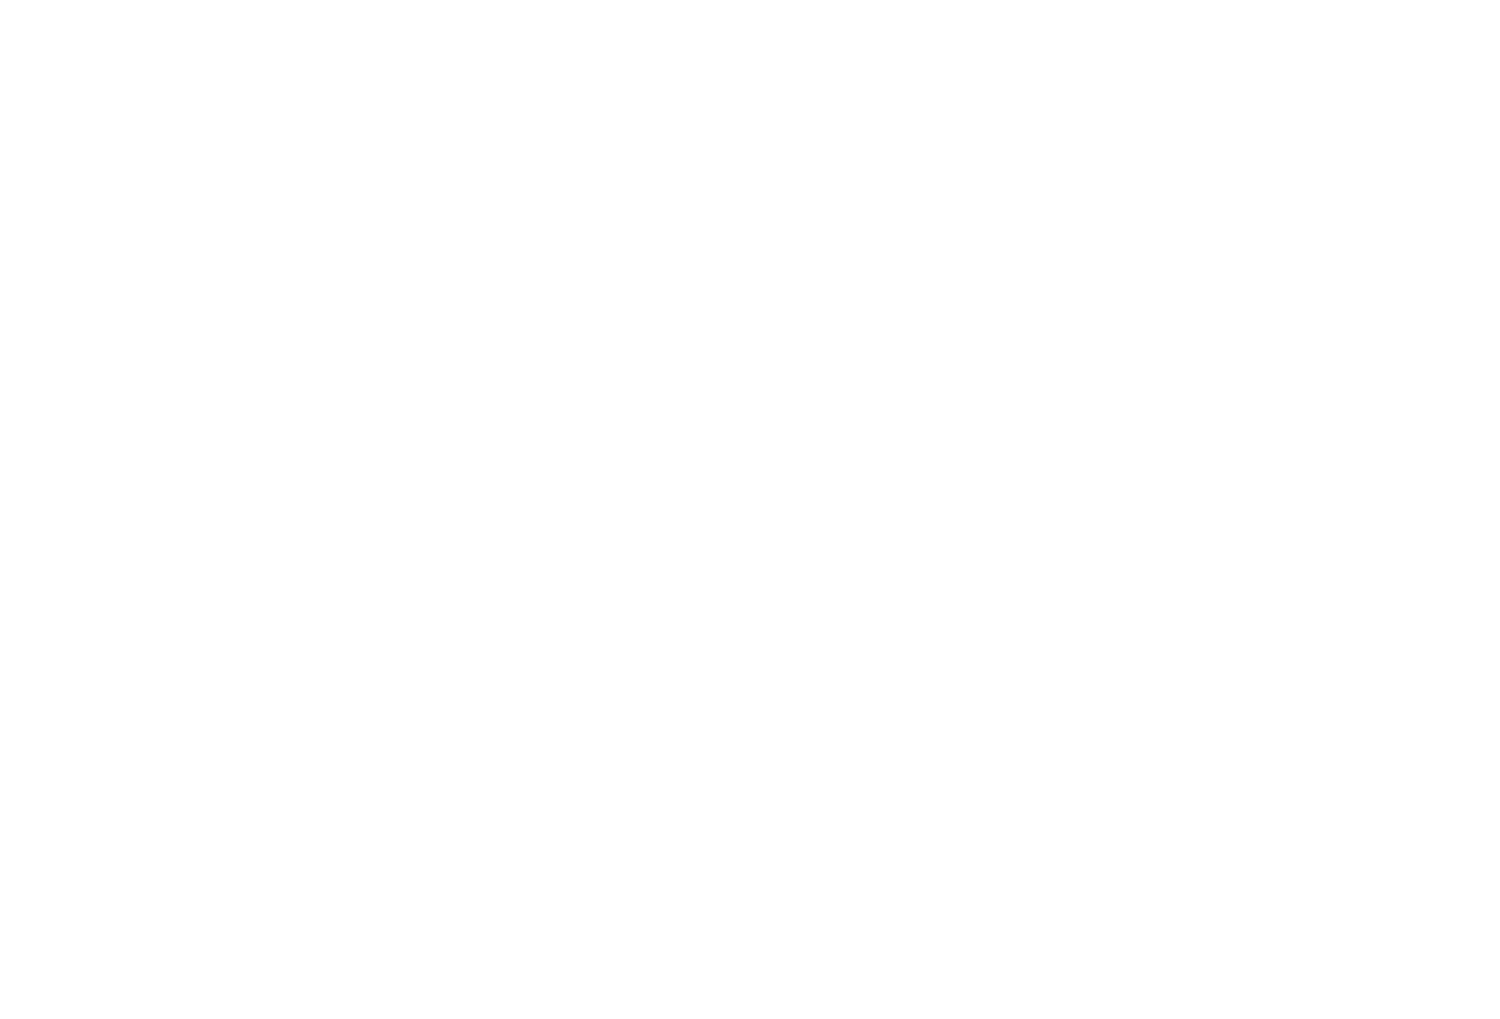 Pavillon Bar & Kitchen